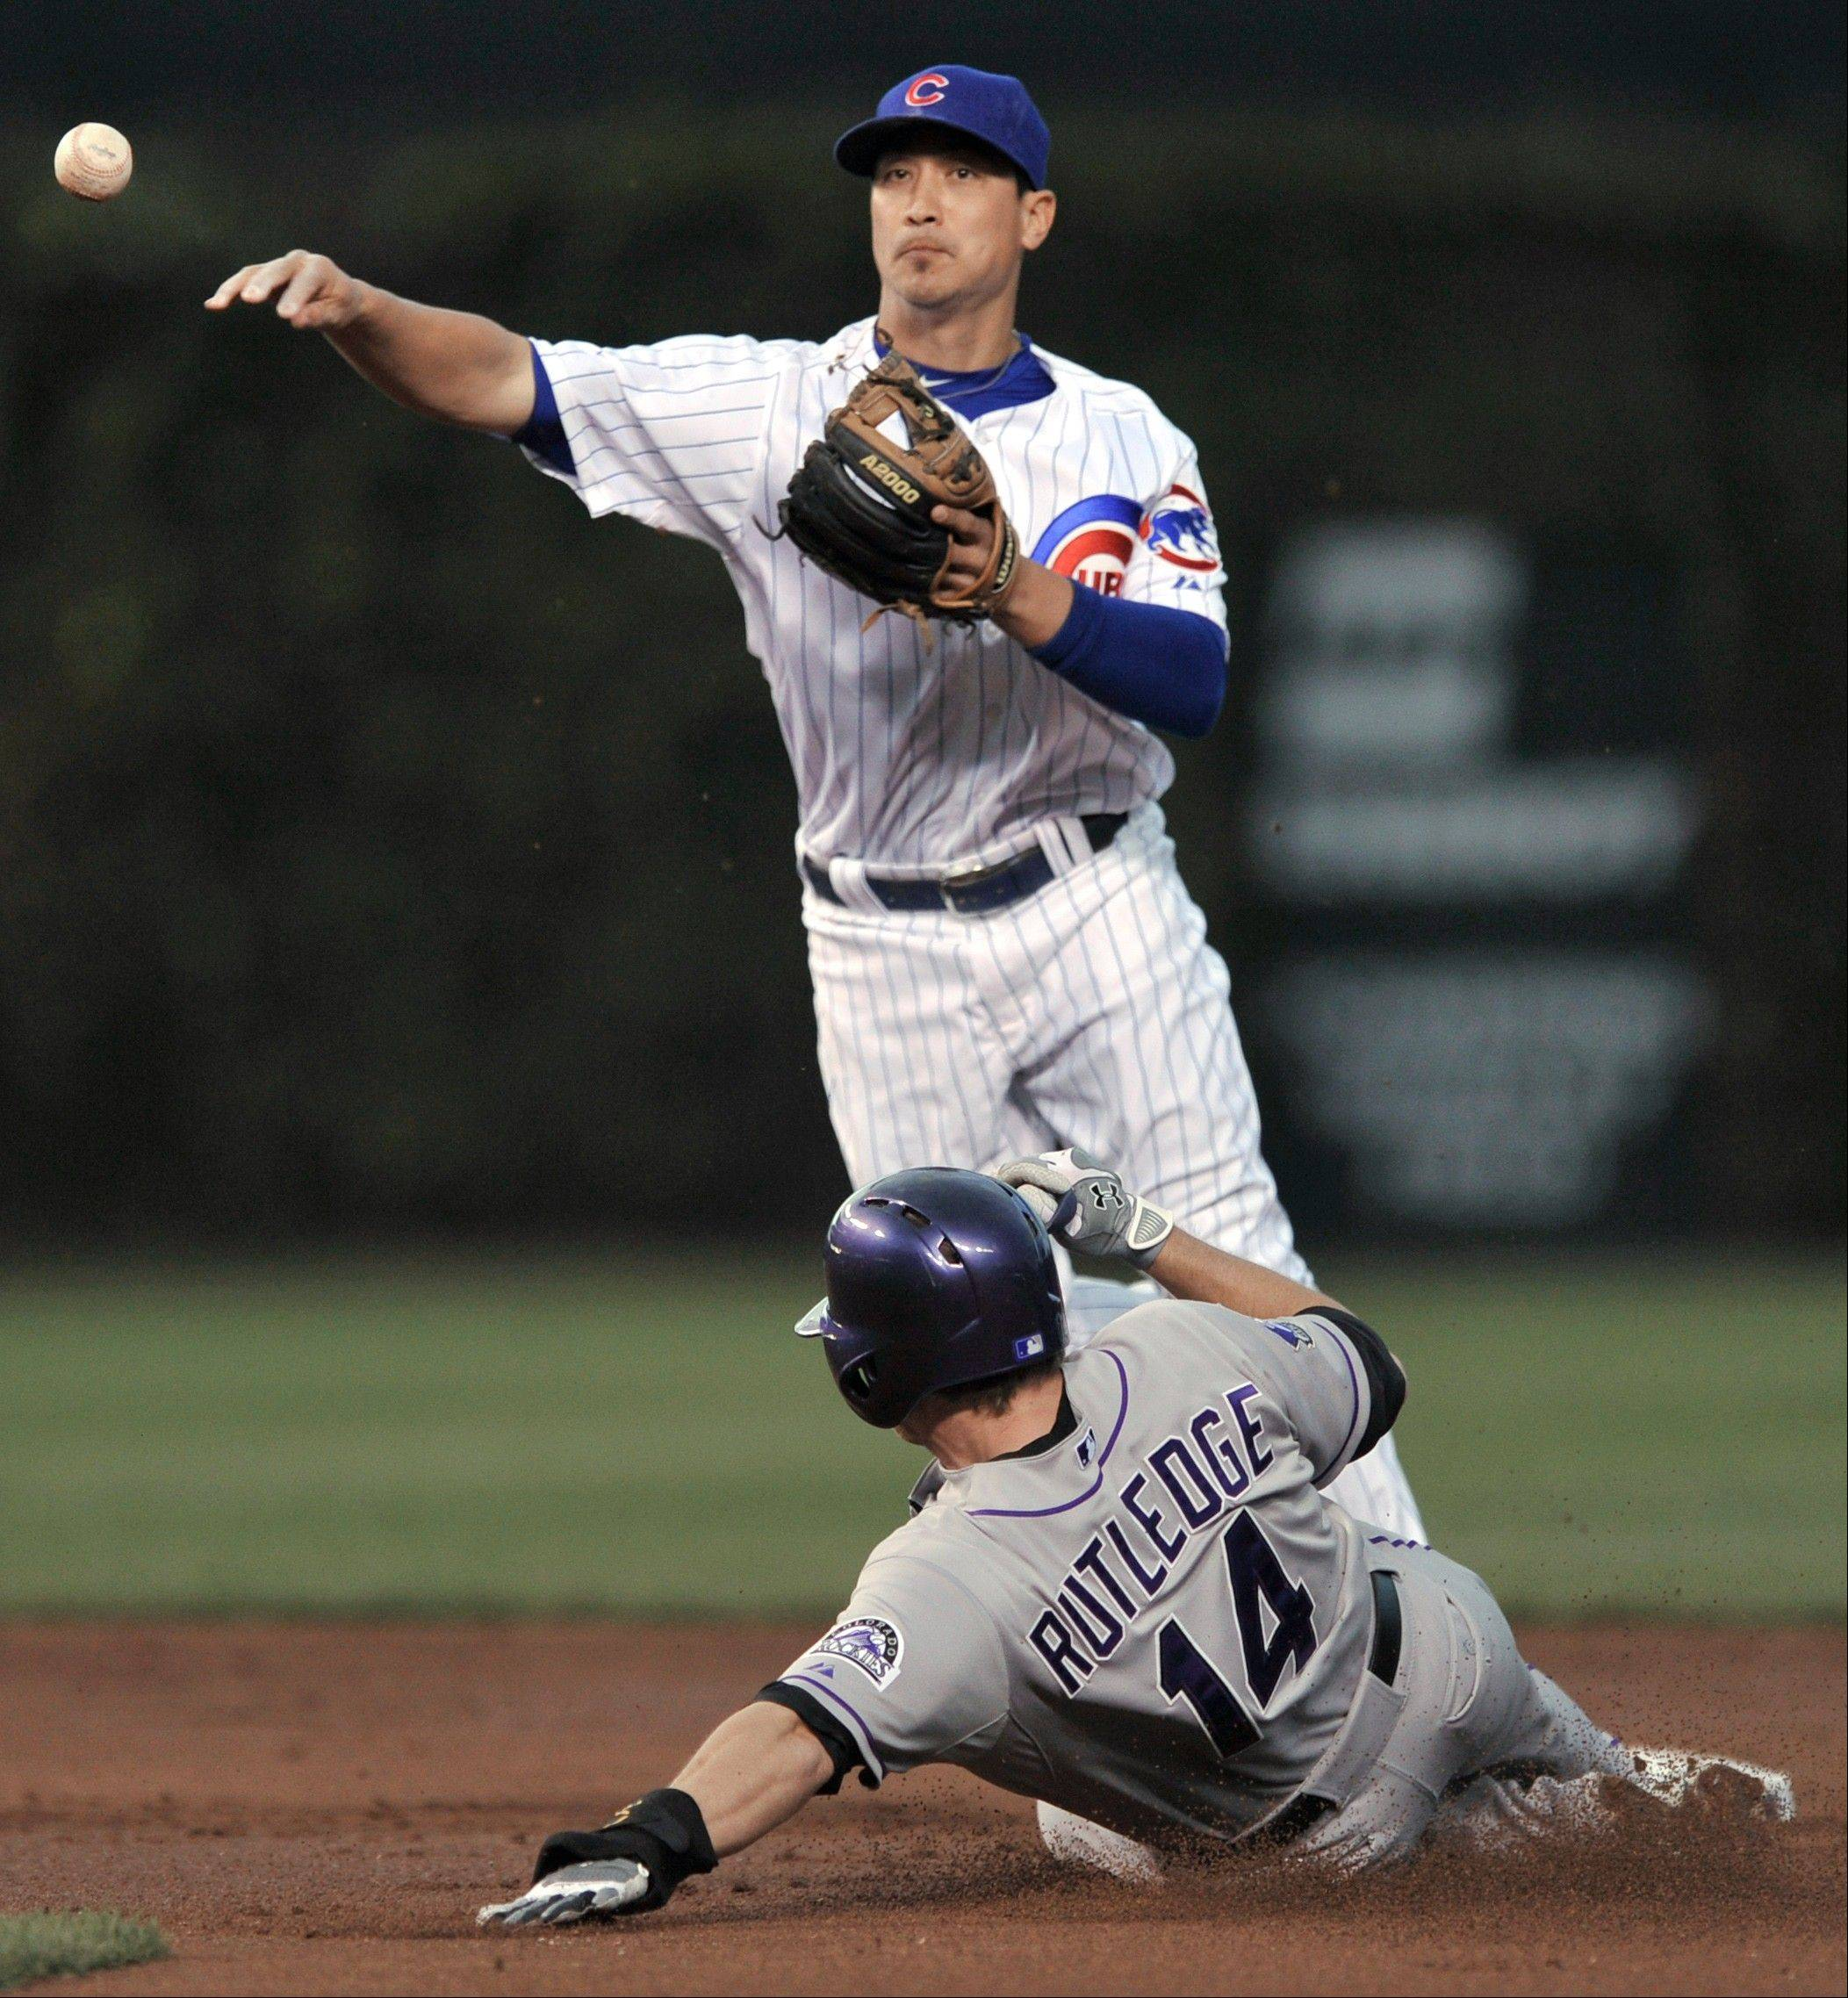 Cubs second baseman Darwin Barney has continued to play Gold Glove defense, and he also has been able to pick up his offense of late.